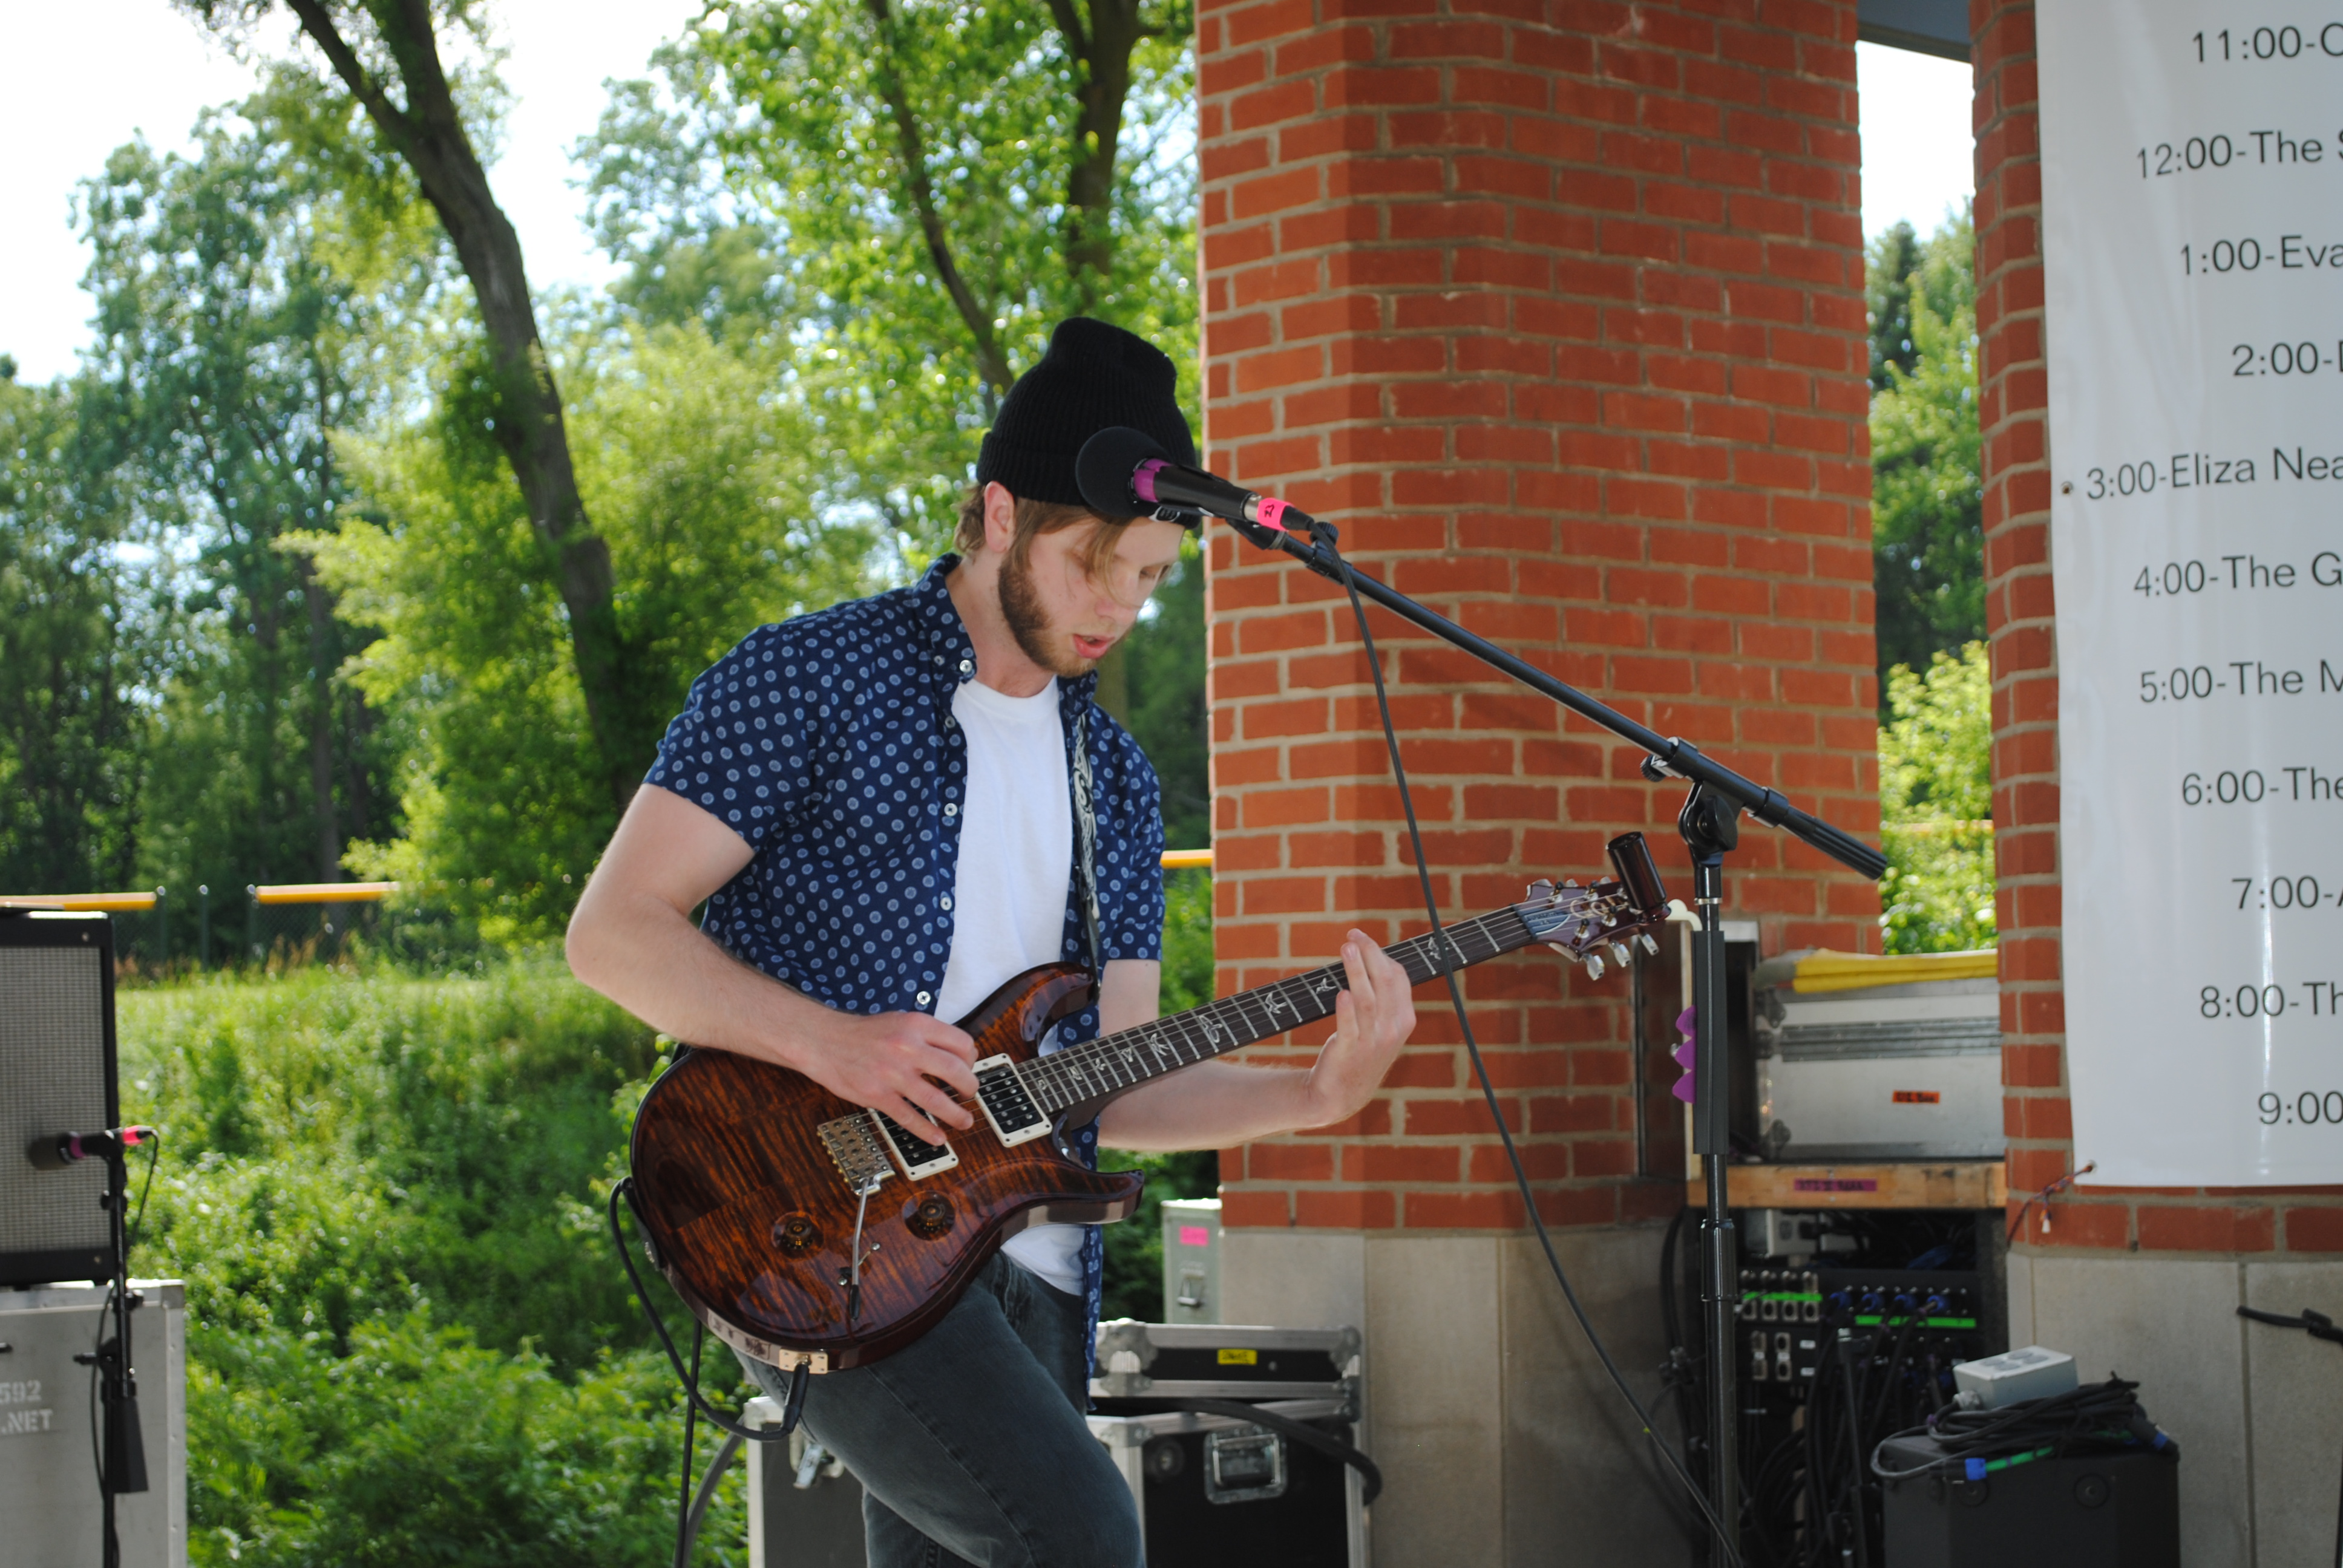 Fourth Annual Currents Music Festival Returns to Milford 6/9/18